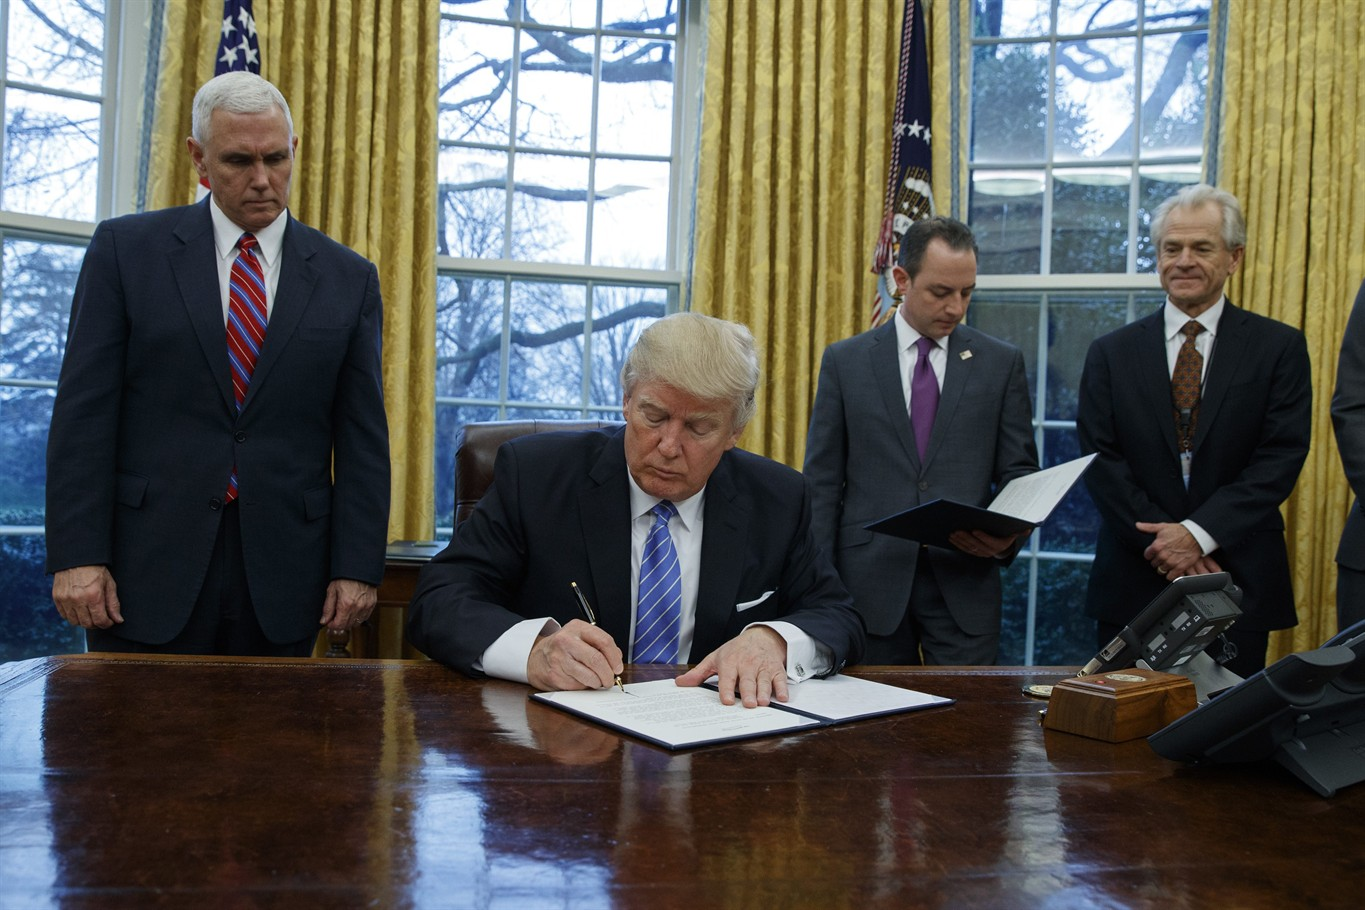 Trump signs executive order to withdraw US from TPP